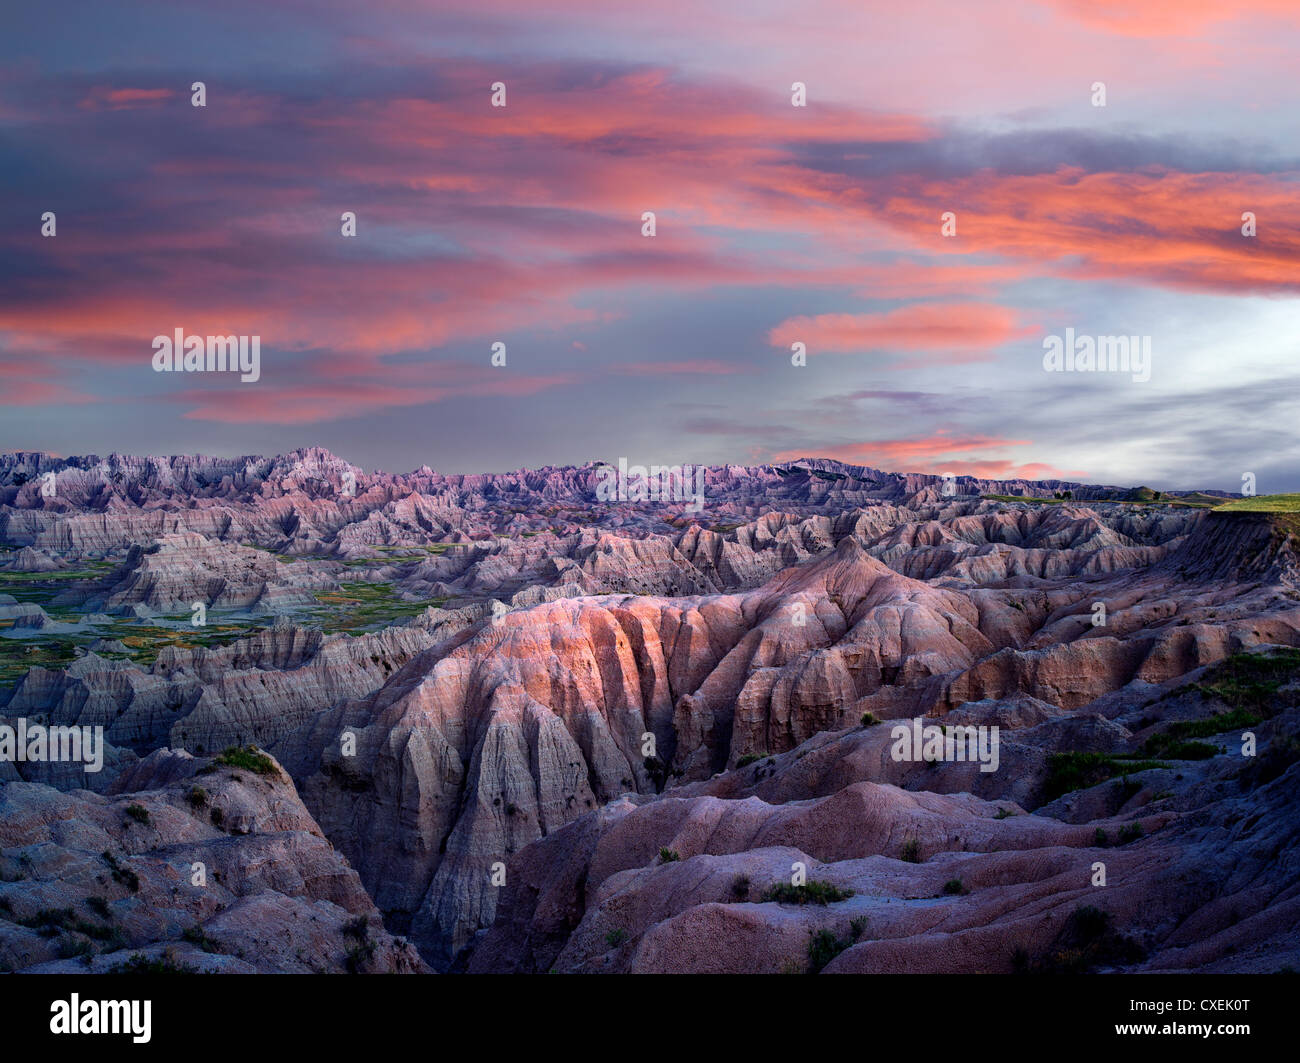 Colorful formations in Badlands National Park, South Dakota - Stock Image